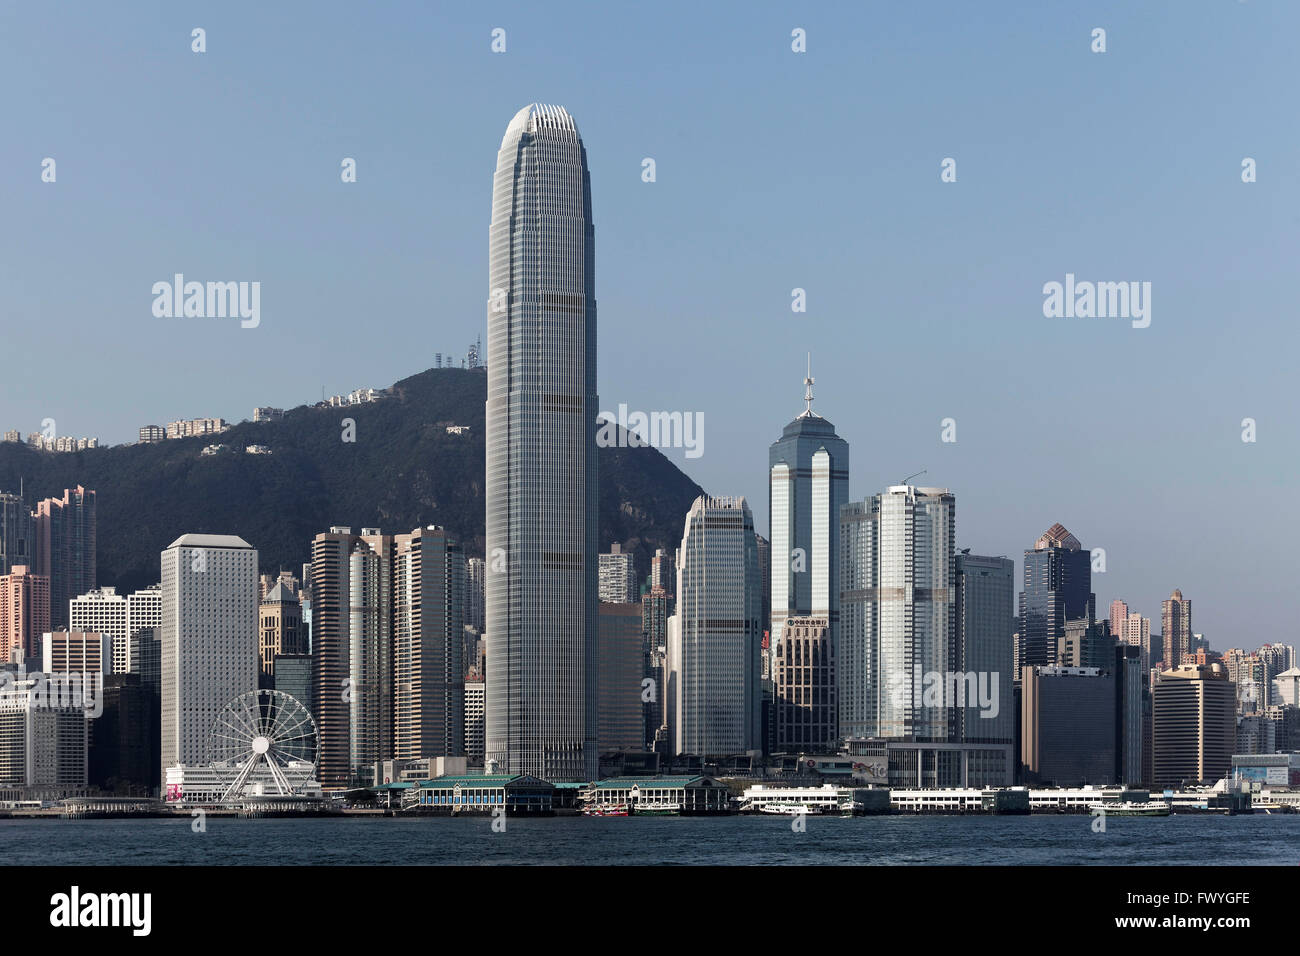 Skyline Hongkong Island, with skyscraper Two International Finance Centre, Central district, Hong Kong, China - Stock Image